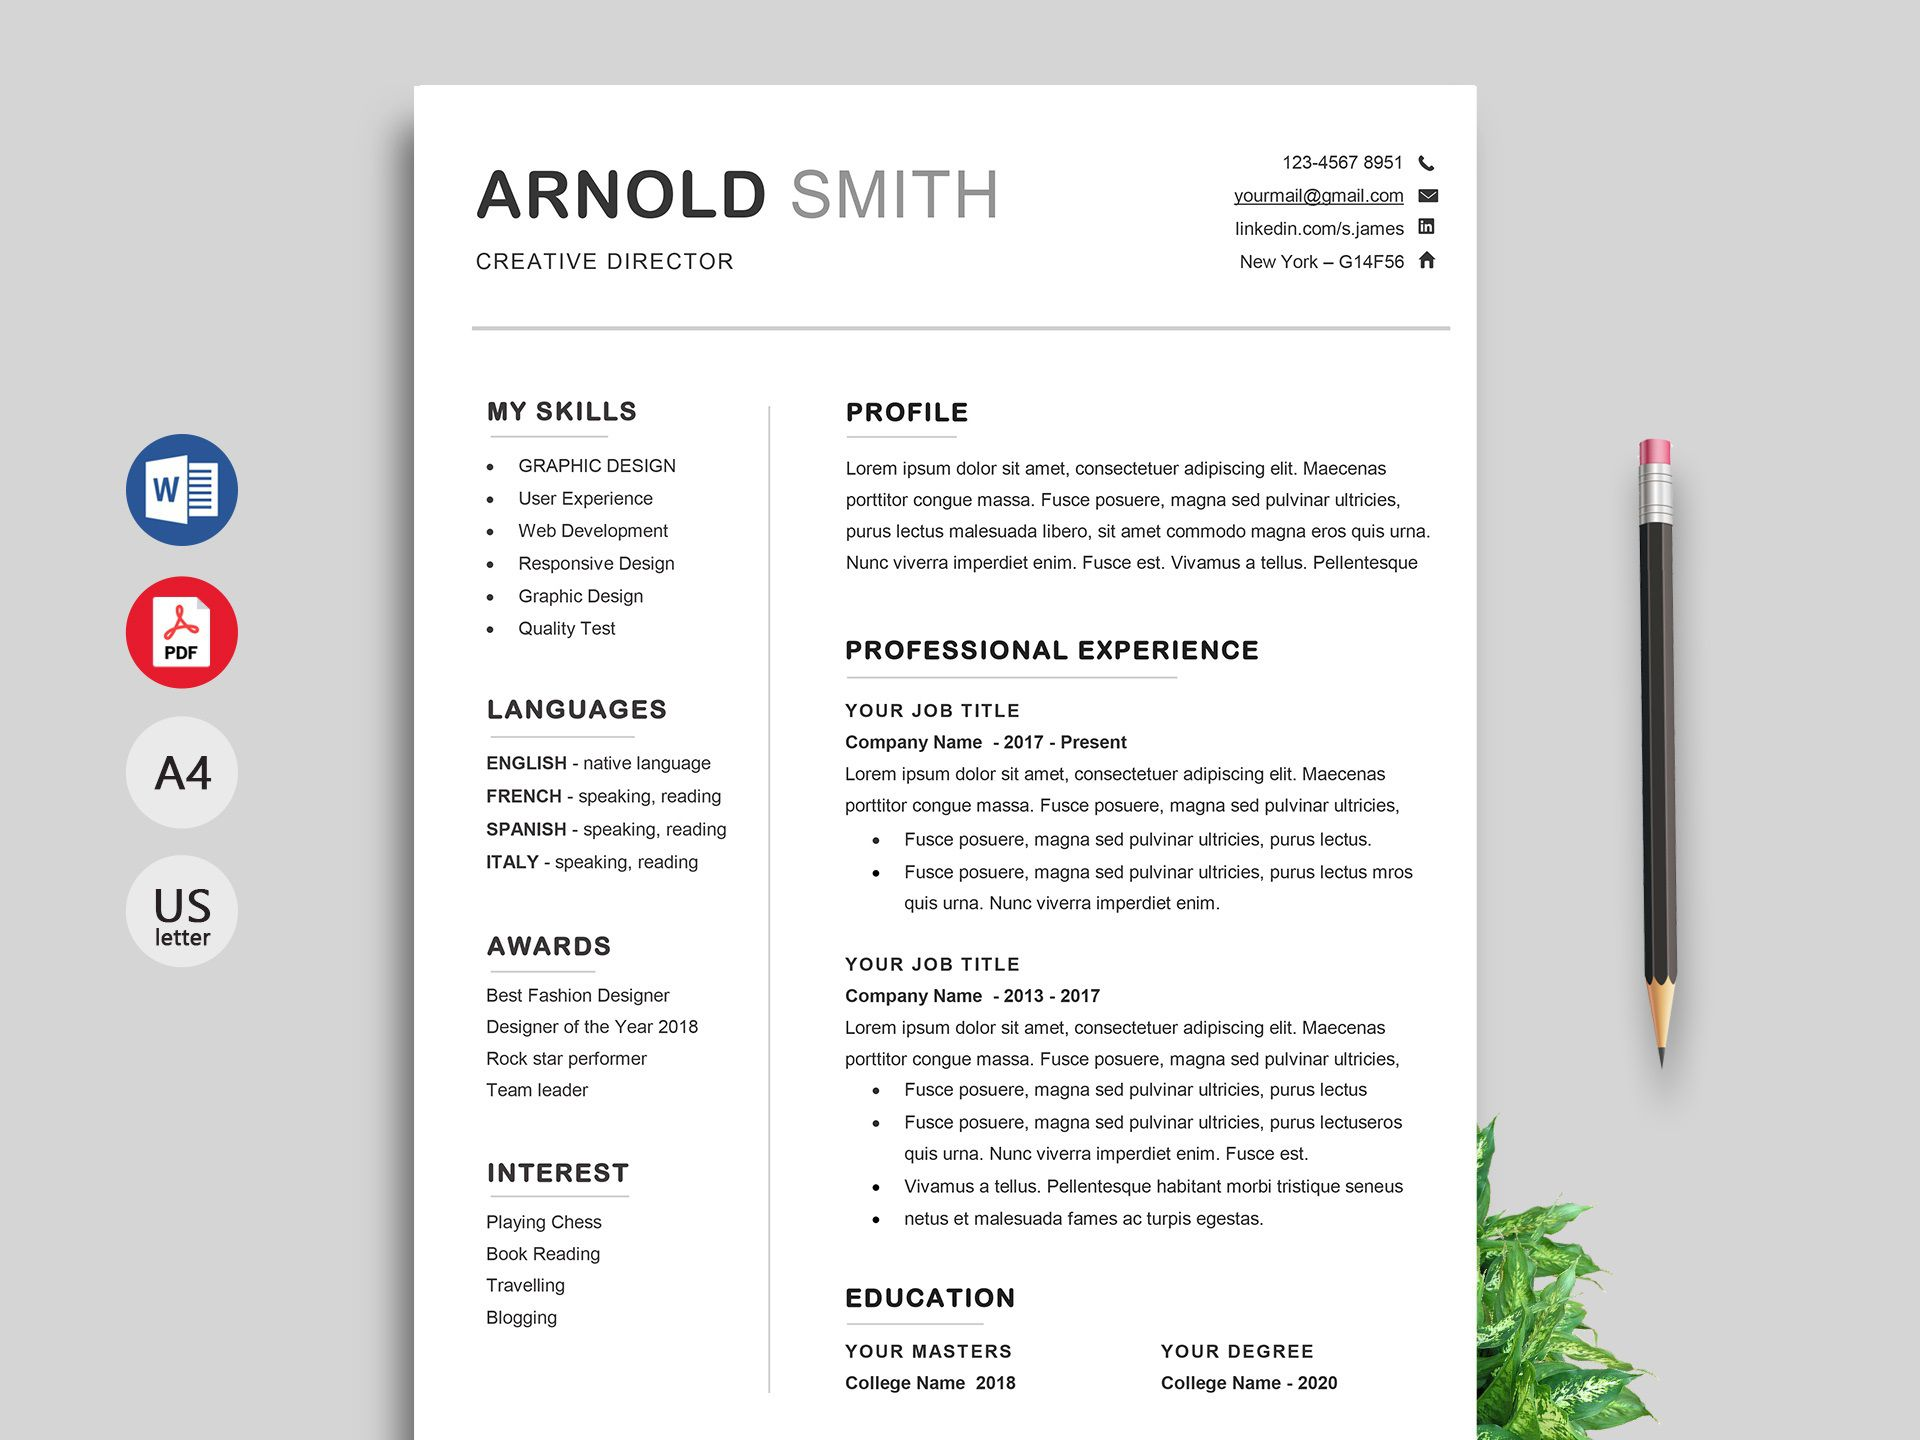 002 Impressive Professional Resume Template Word Free Download High Def  Cv 2020 With PhotoFull